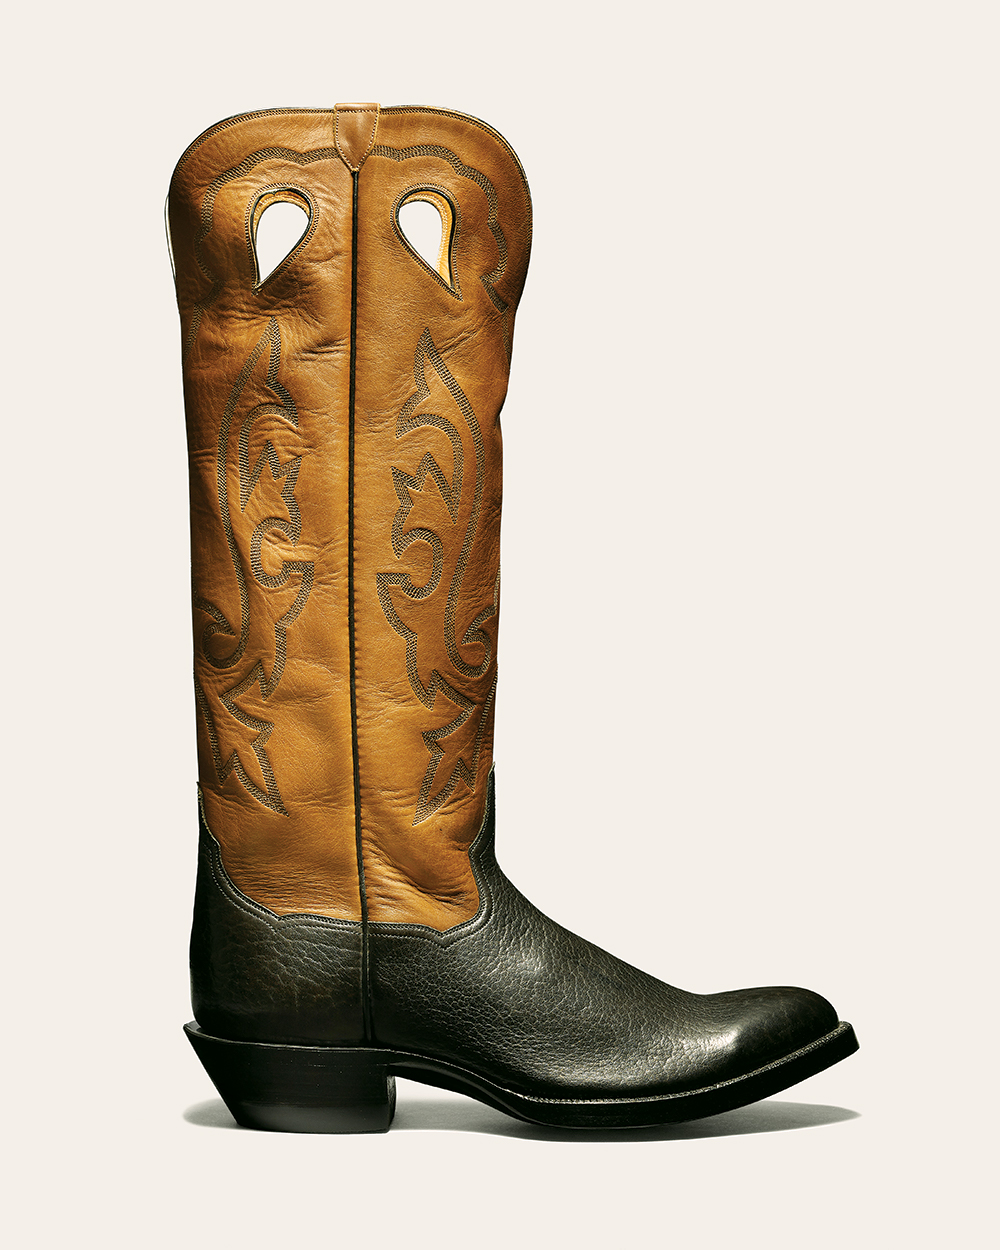 Behold the Art of the Cowboy Boot